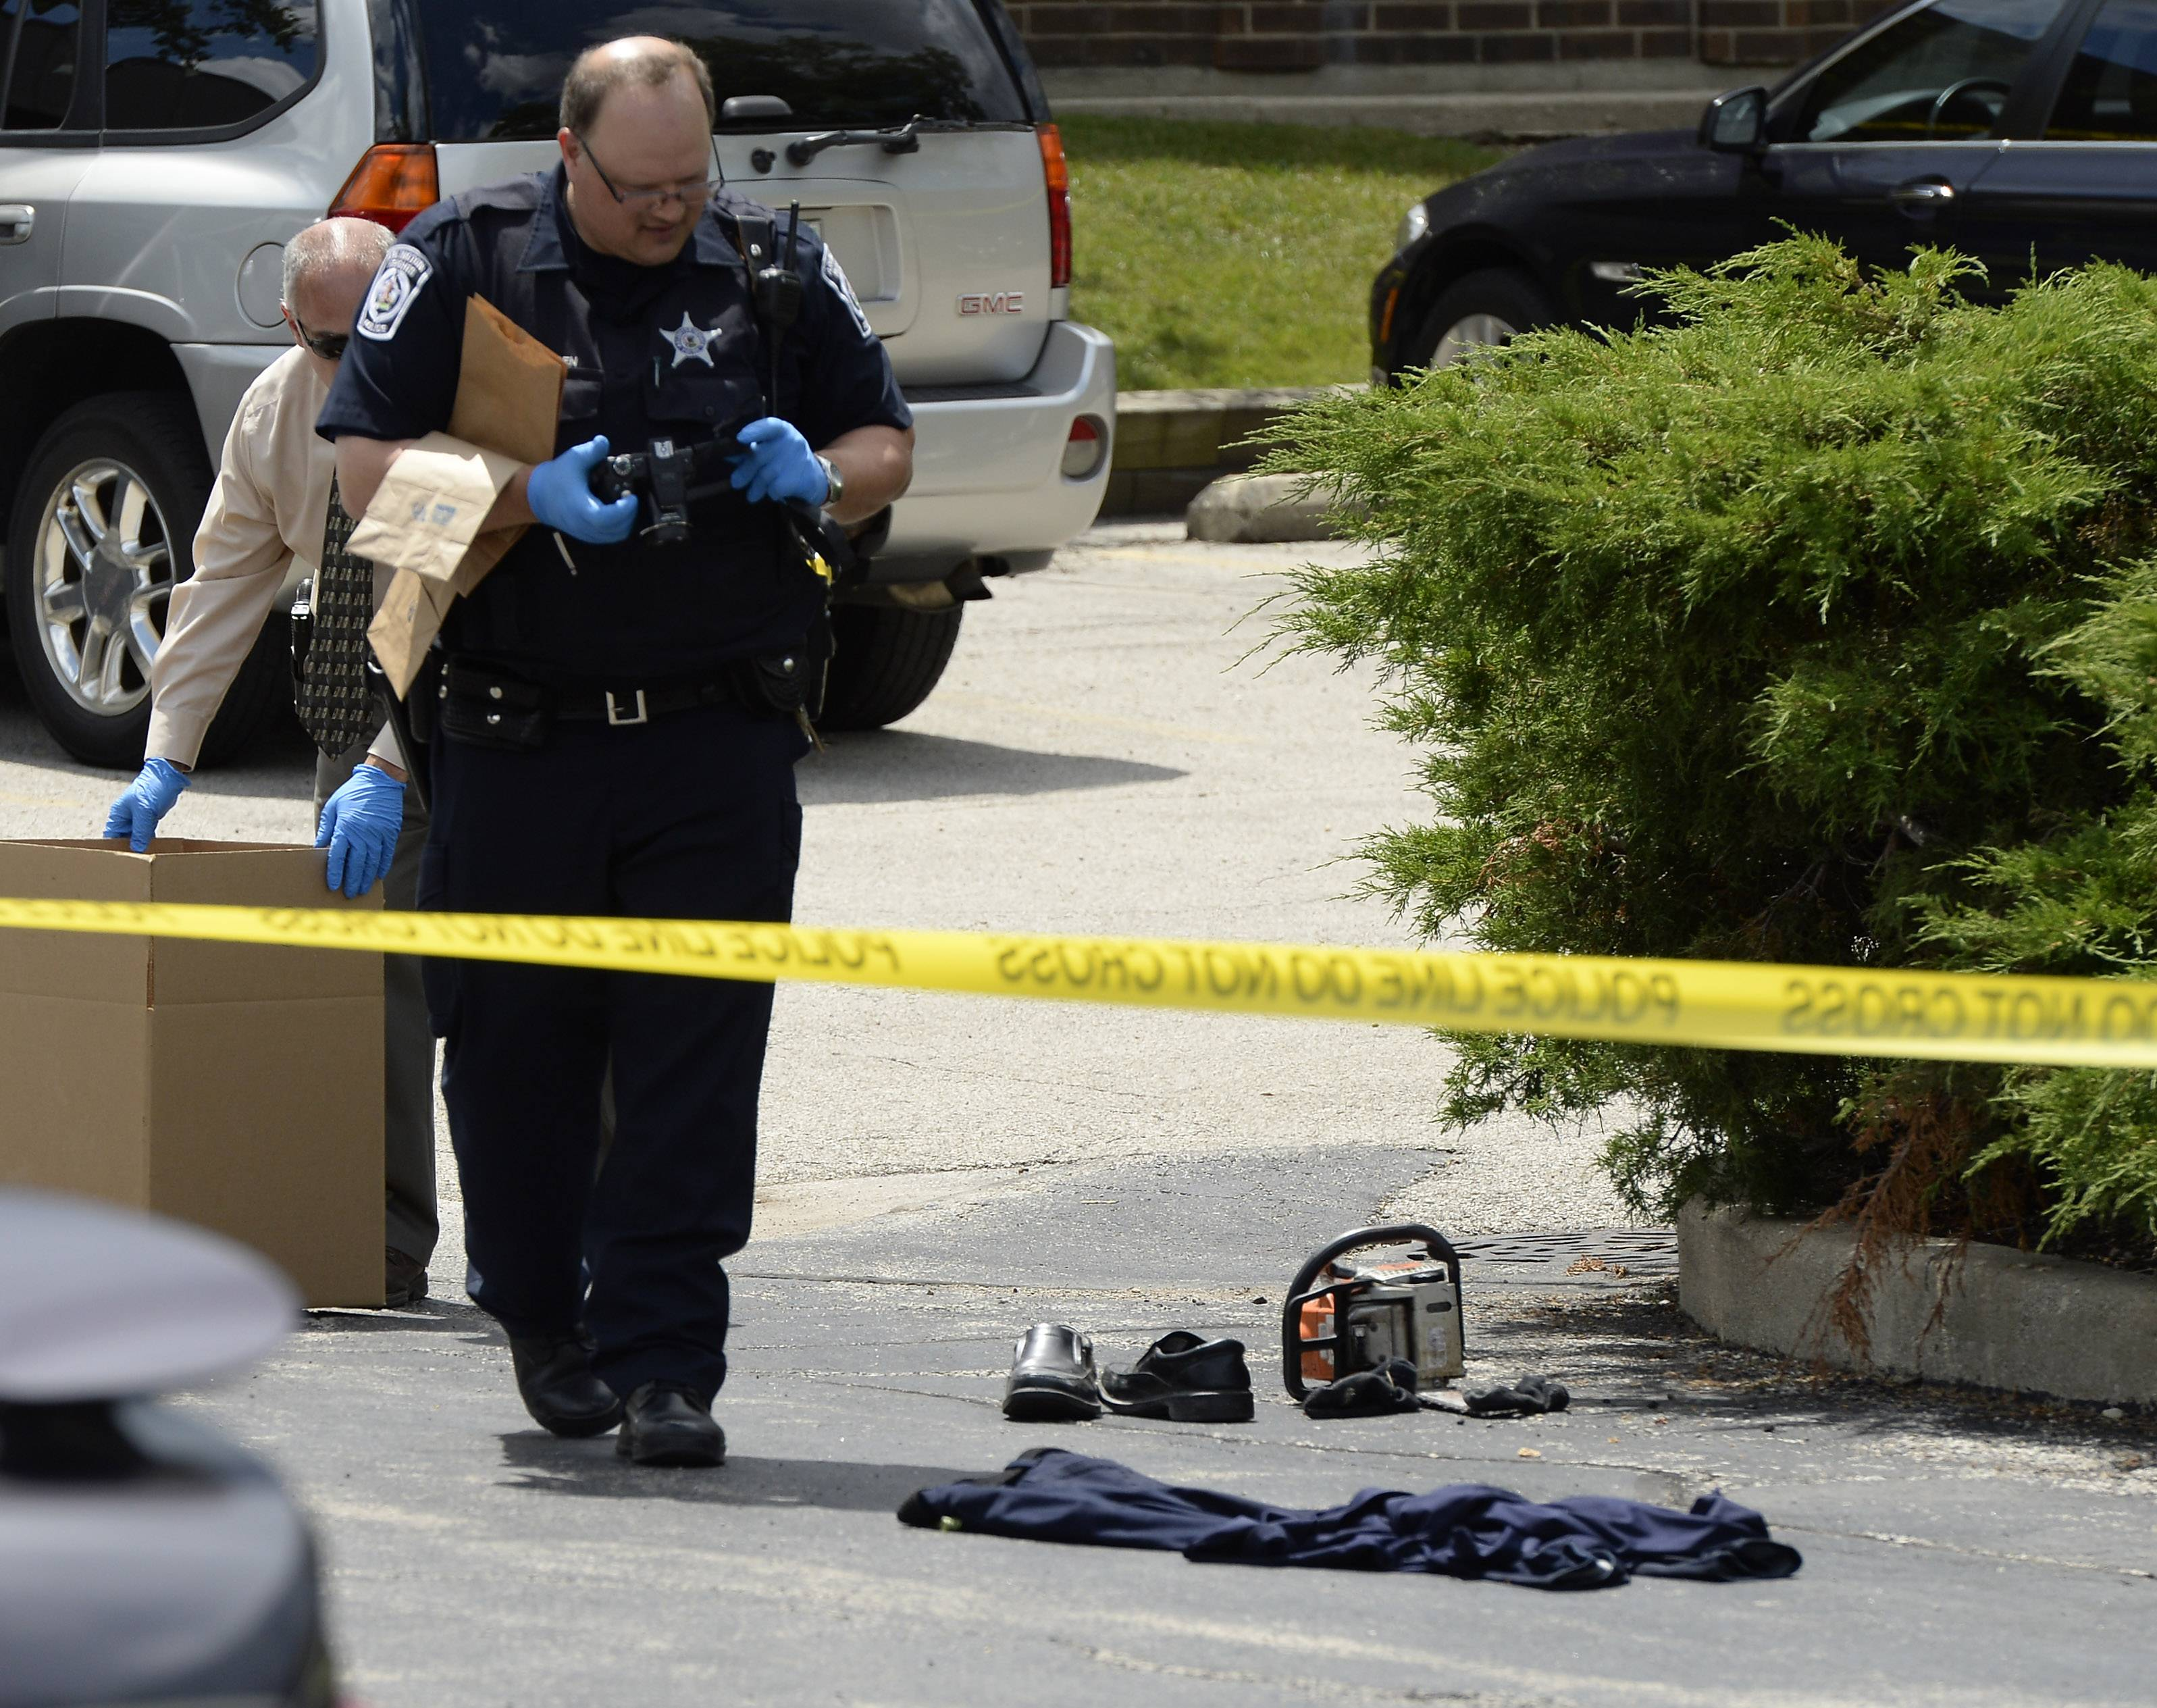 Arlington Heights police gather bloody clothes, a chain saw and other evidence in a domestic dispute that turned violent in Arlington Heights on Monday.